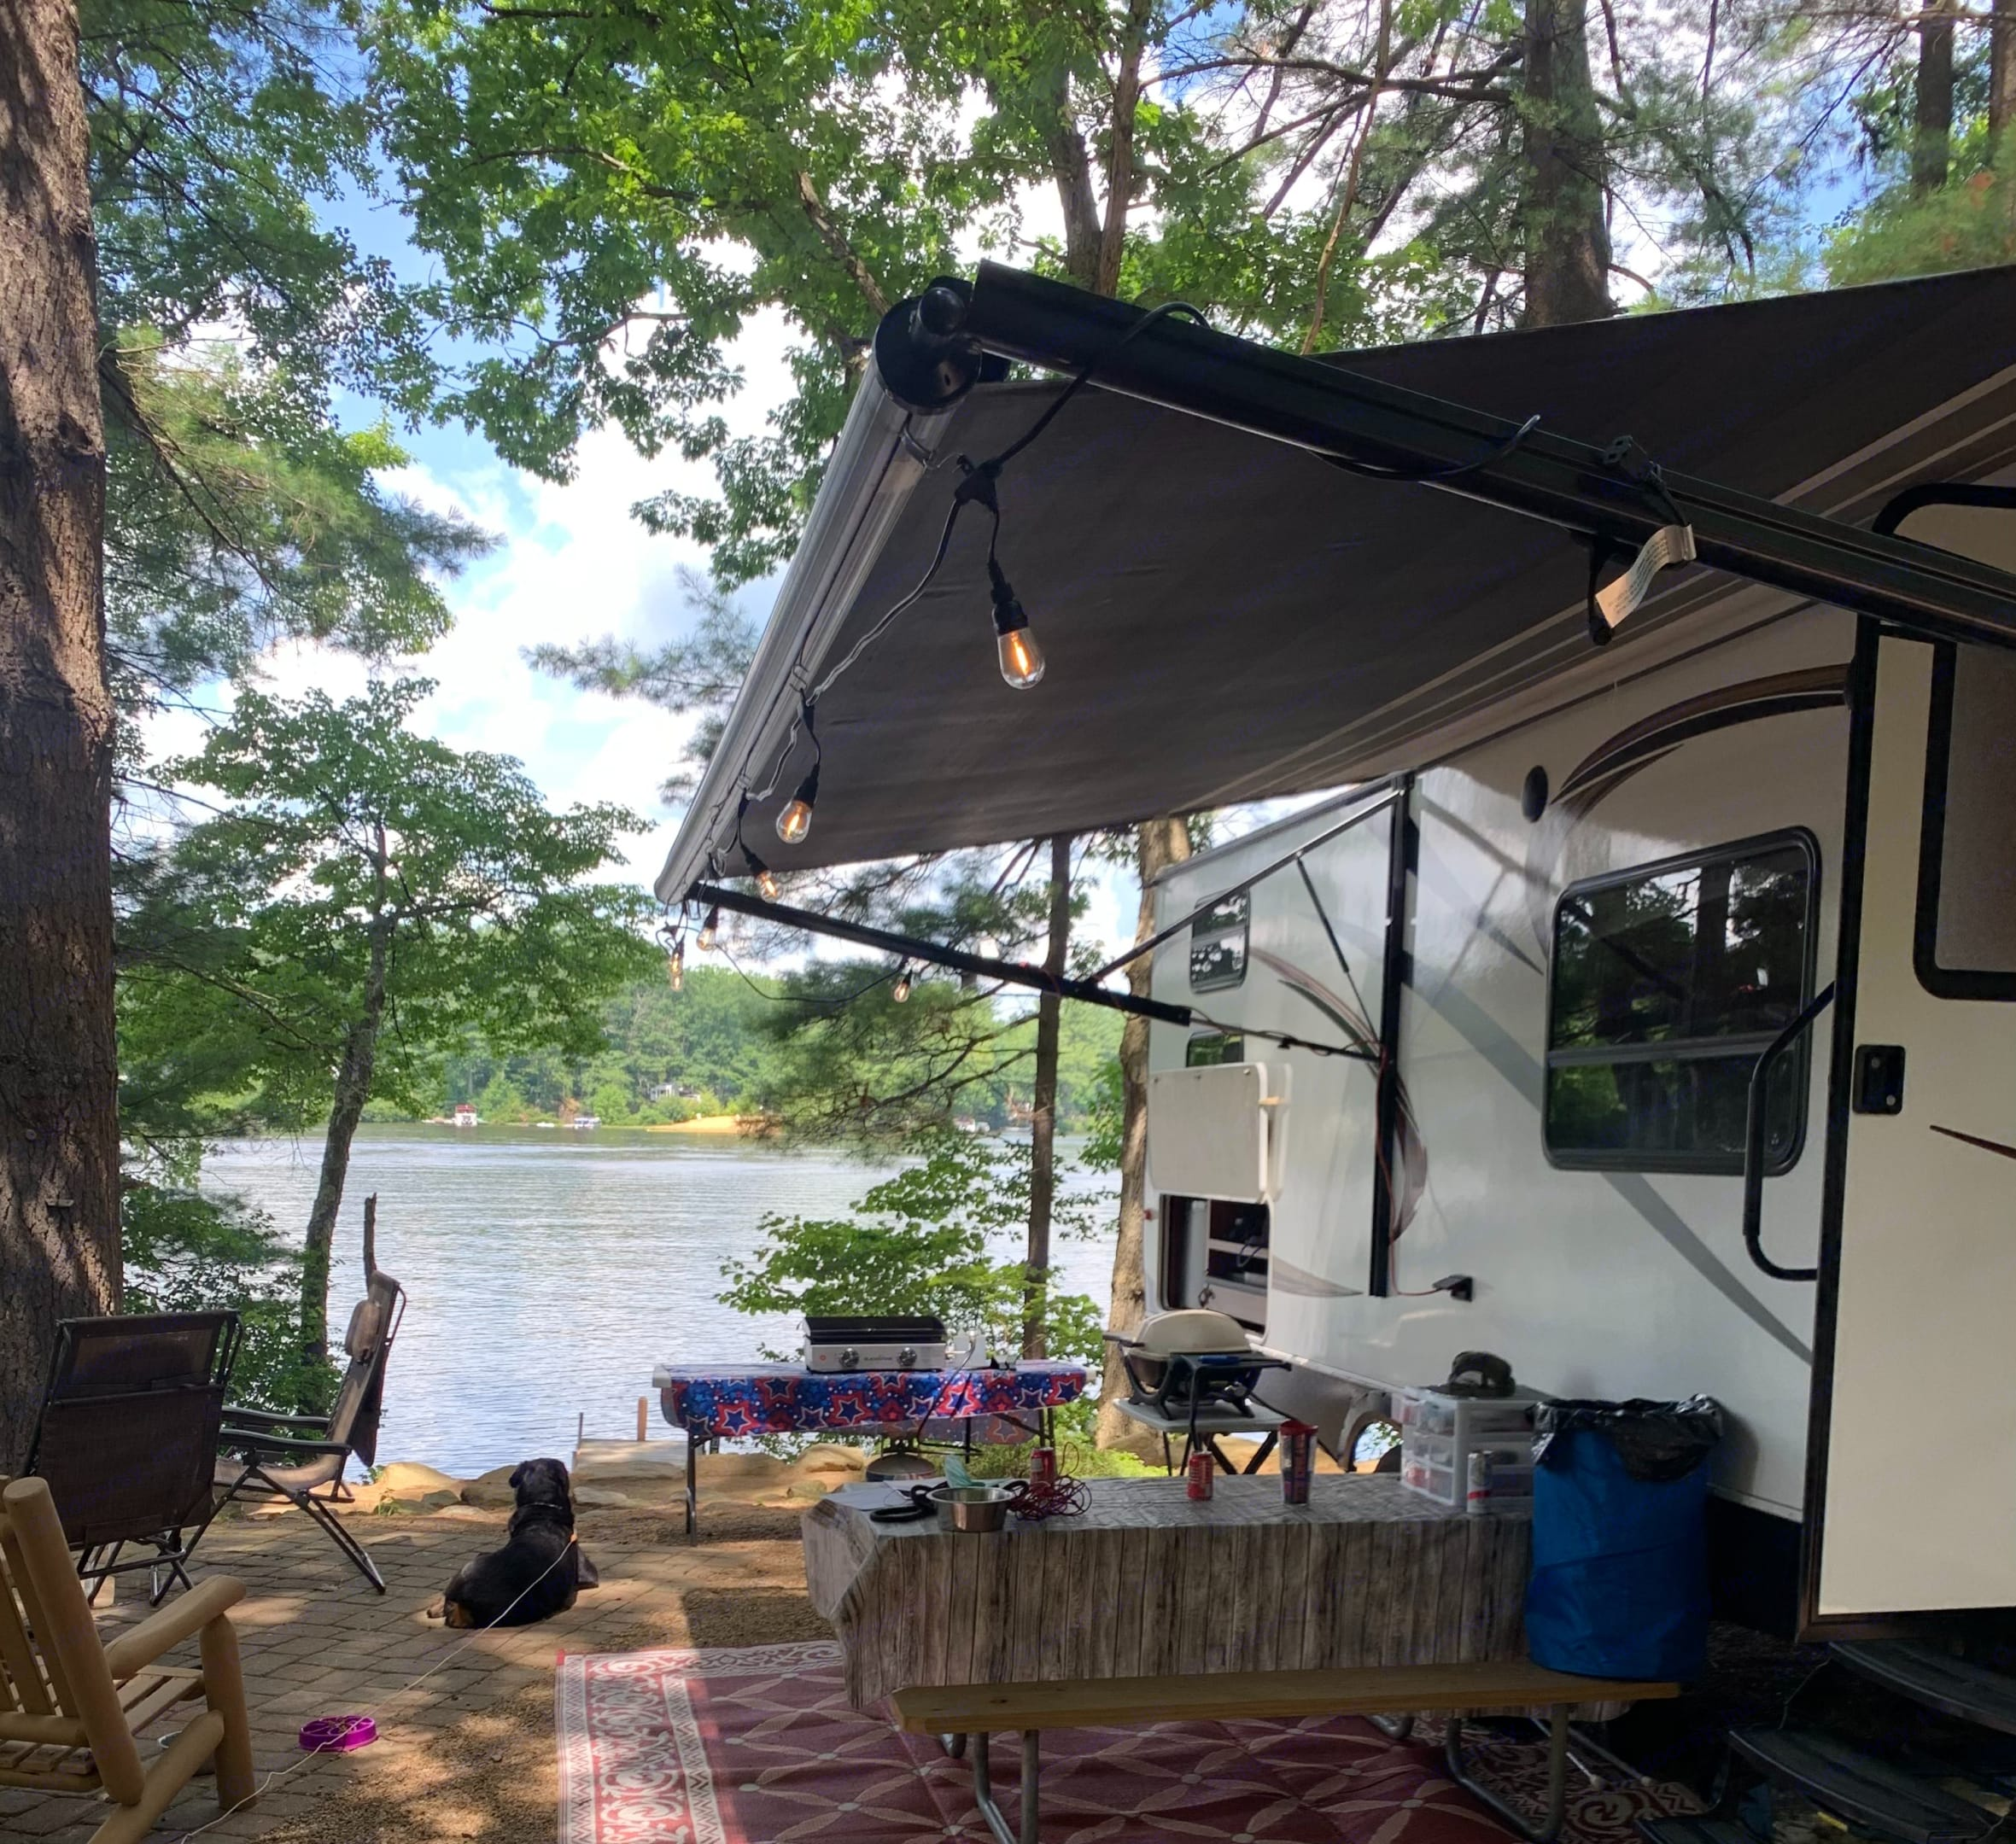 This was taken at Pine Acres, one of our favorite campgrounds in Oakham, MA. This premium site is right on beautiful Dean Pond!. Keystone Other 2013